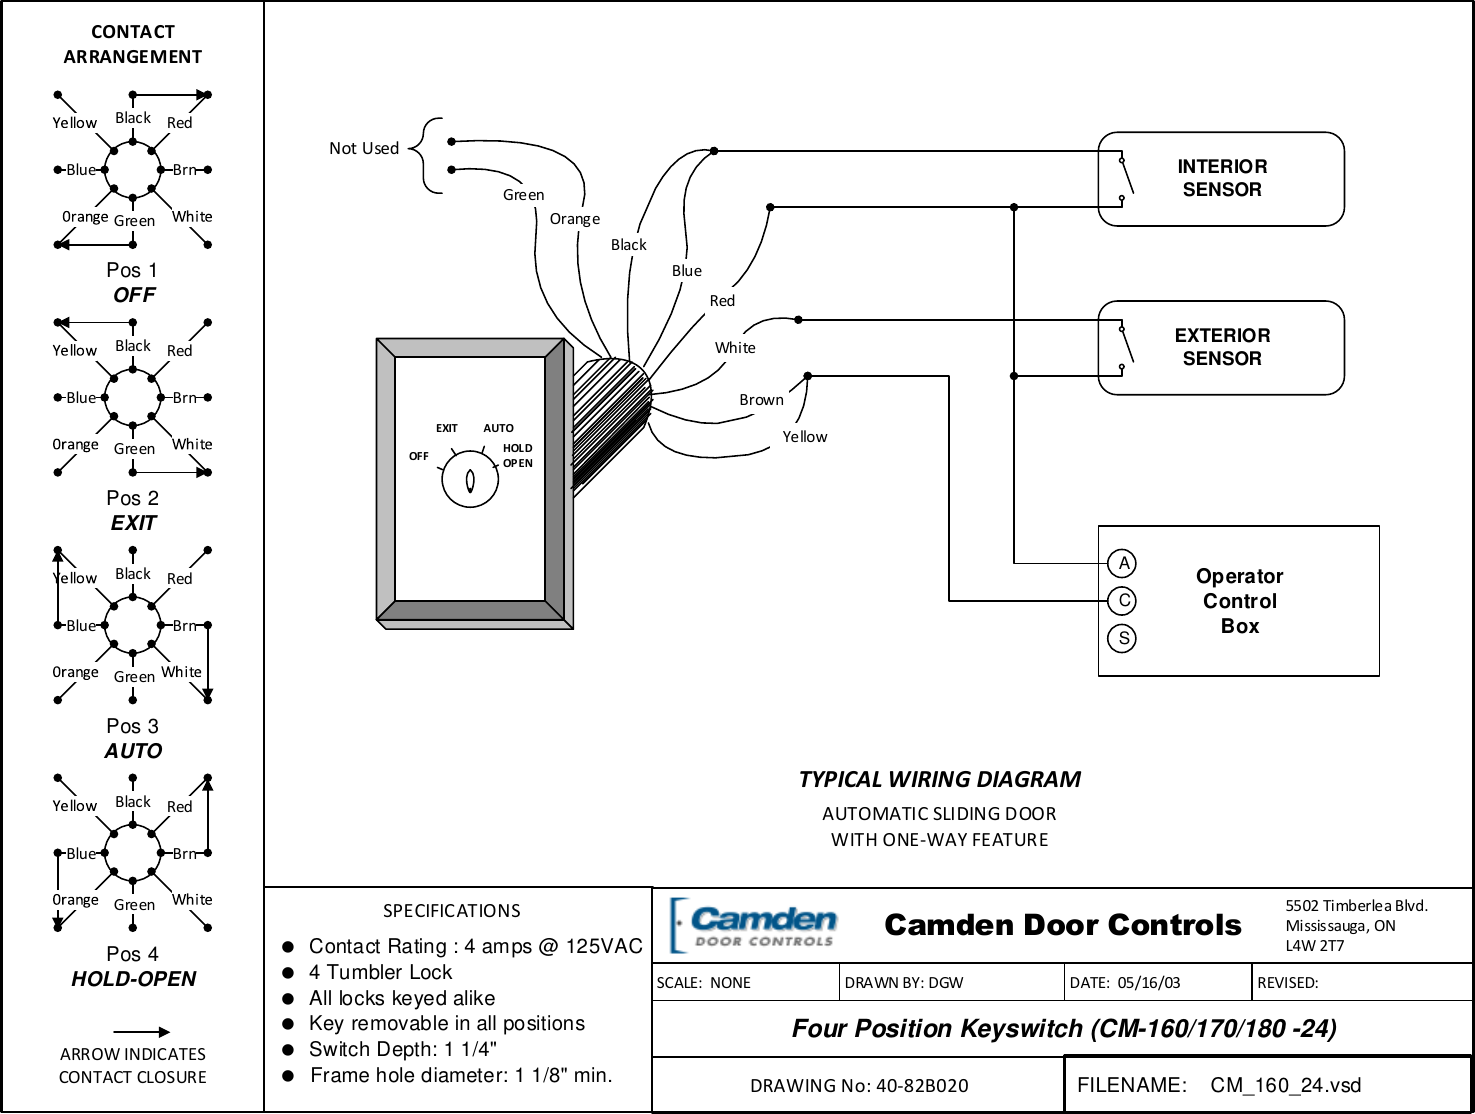 Cm Wiring Diagram Detailed Schematic Diagrams Camden Four Position Keyswitch 160 170 180 24 Ez